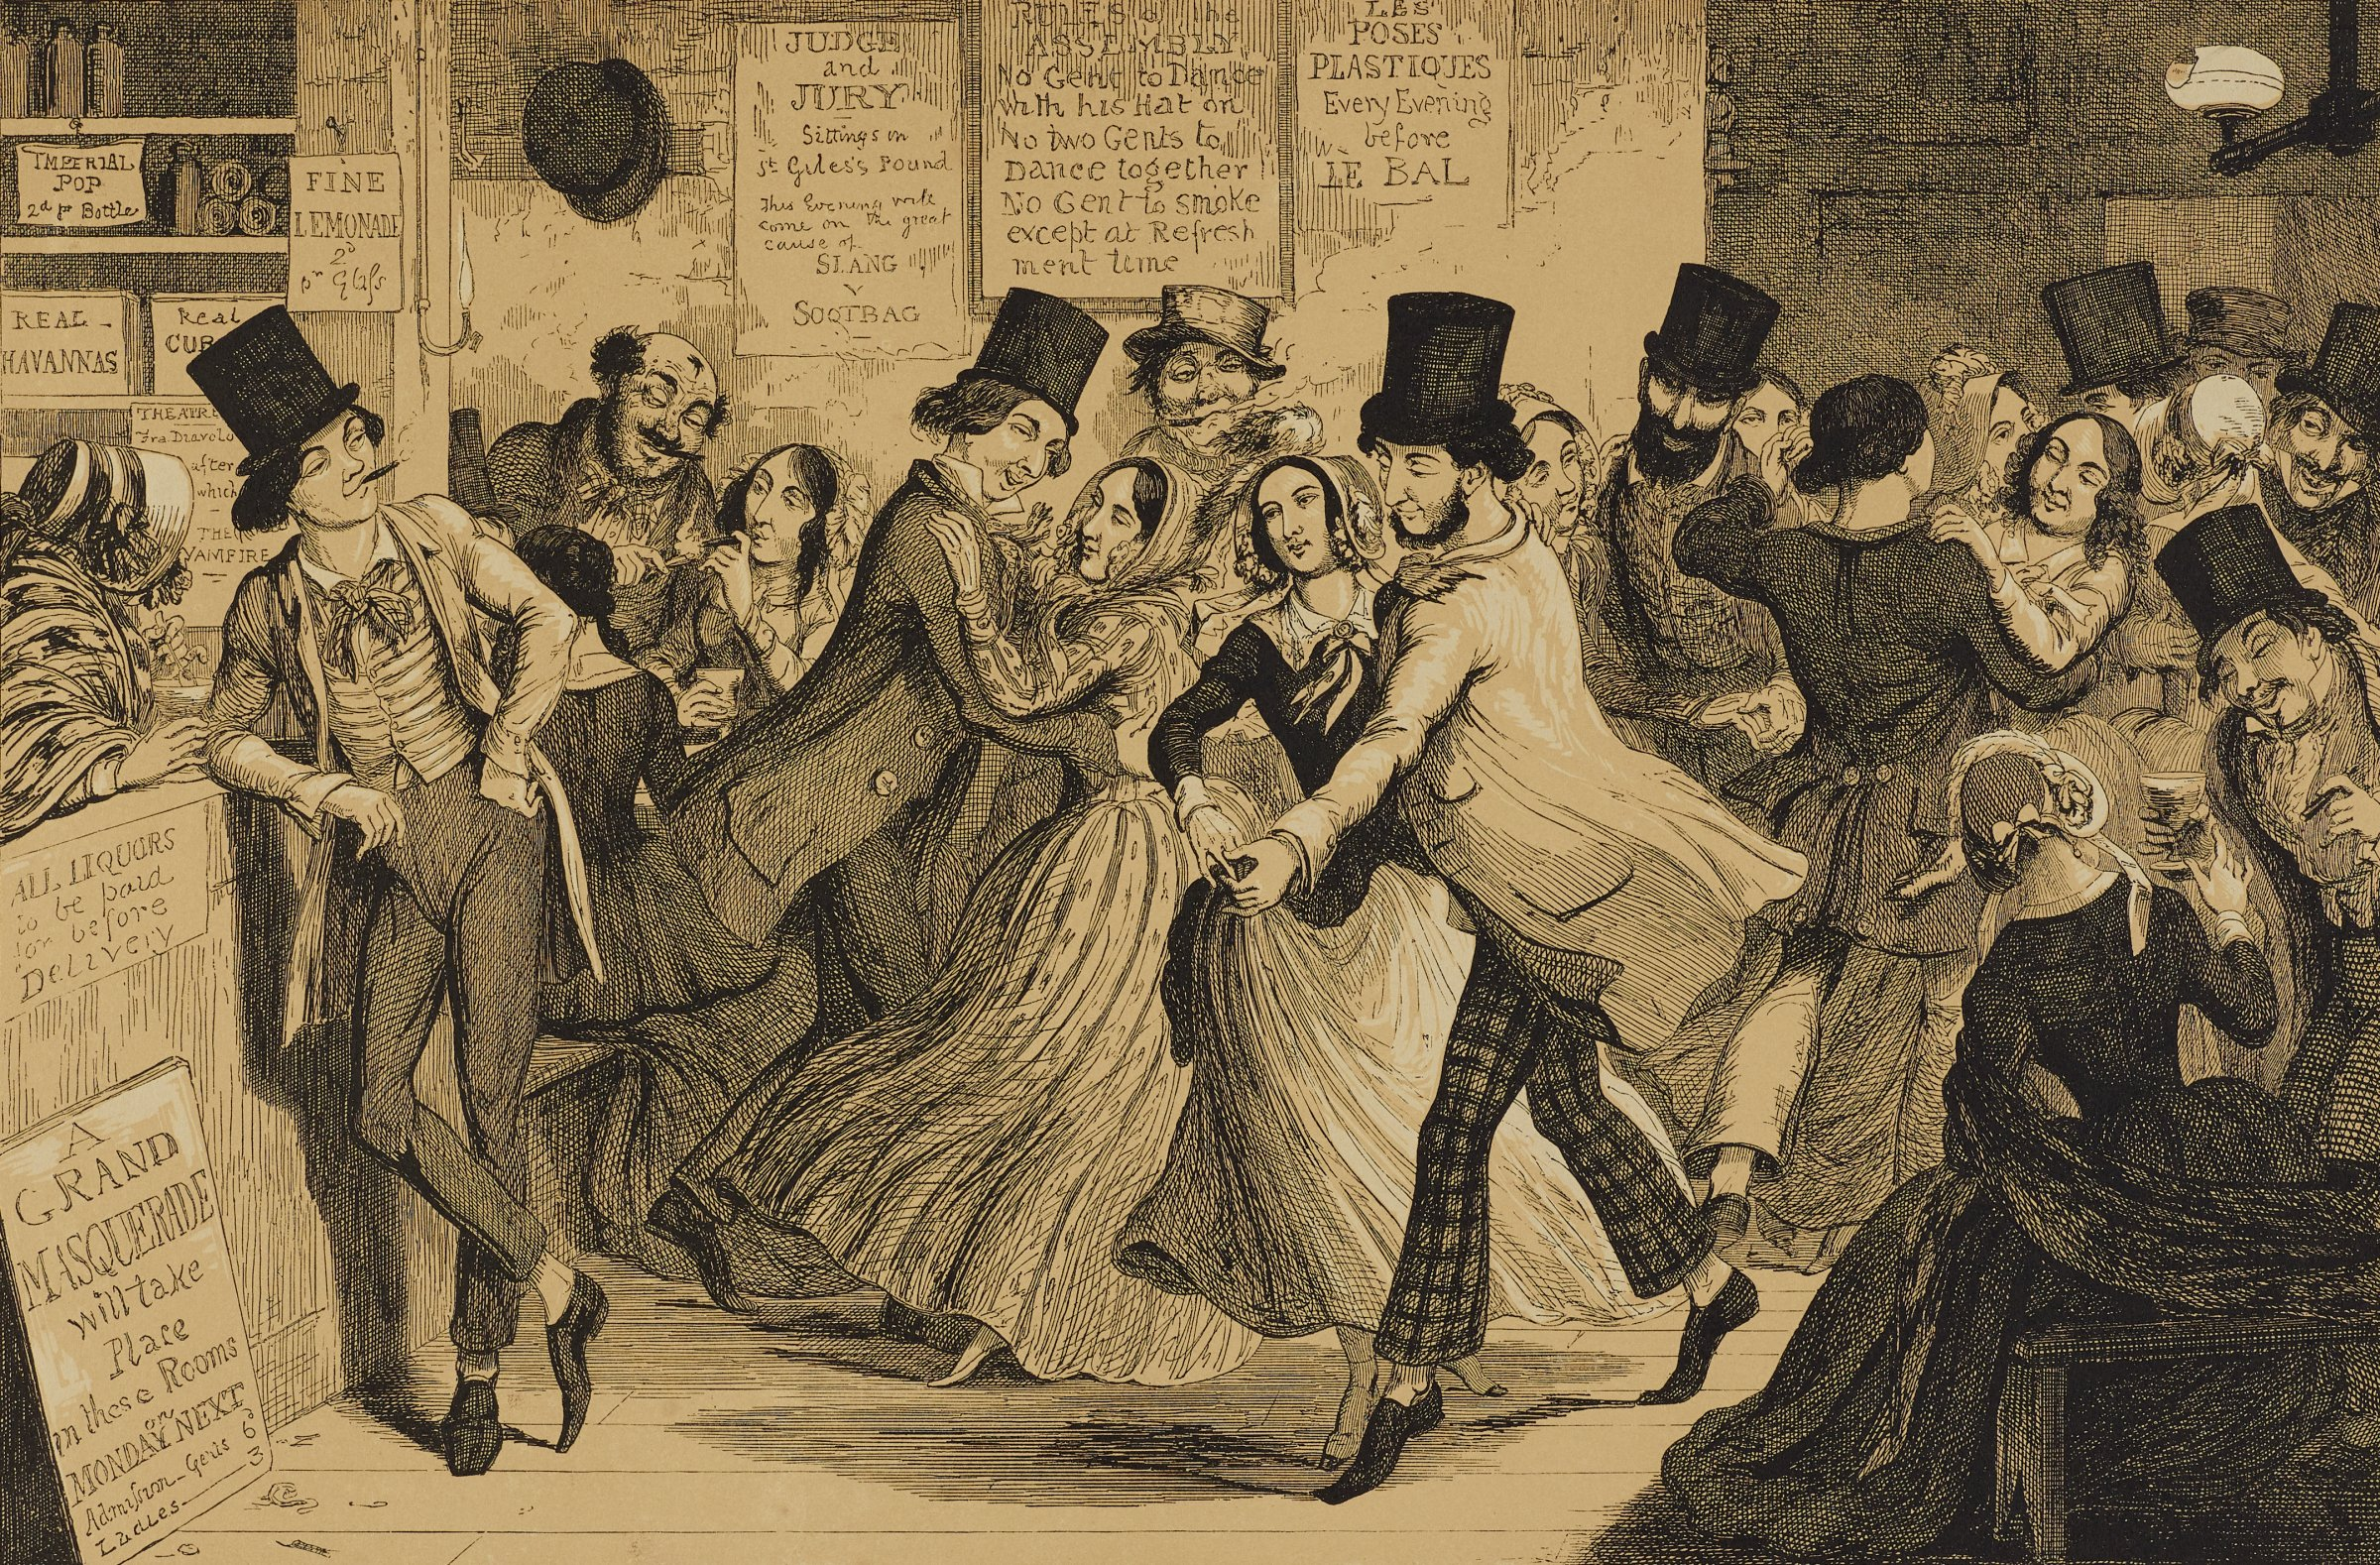 In a crowded gin-shop, the young girl dances with a man in patterned pants. A young man smirks at the couple as he leans on the bar.